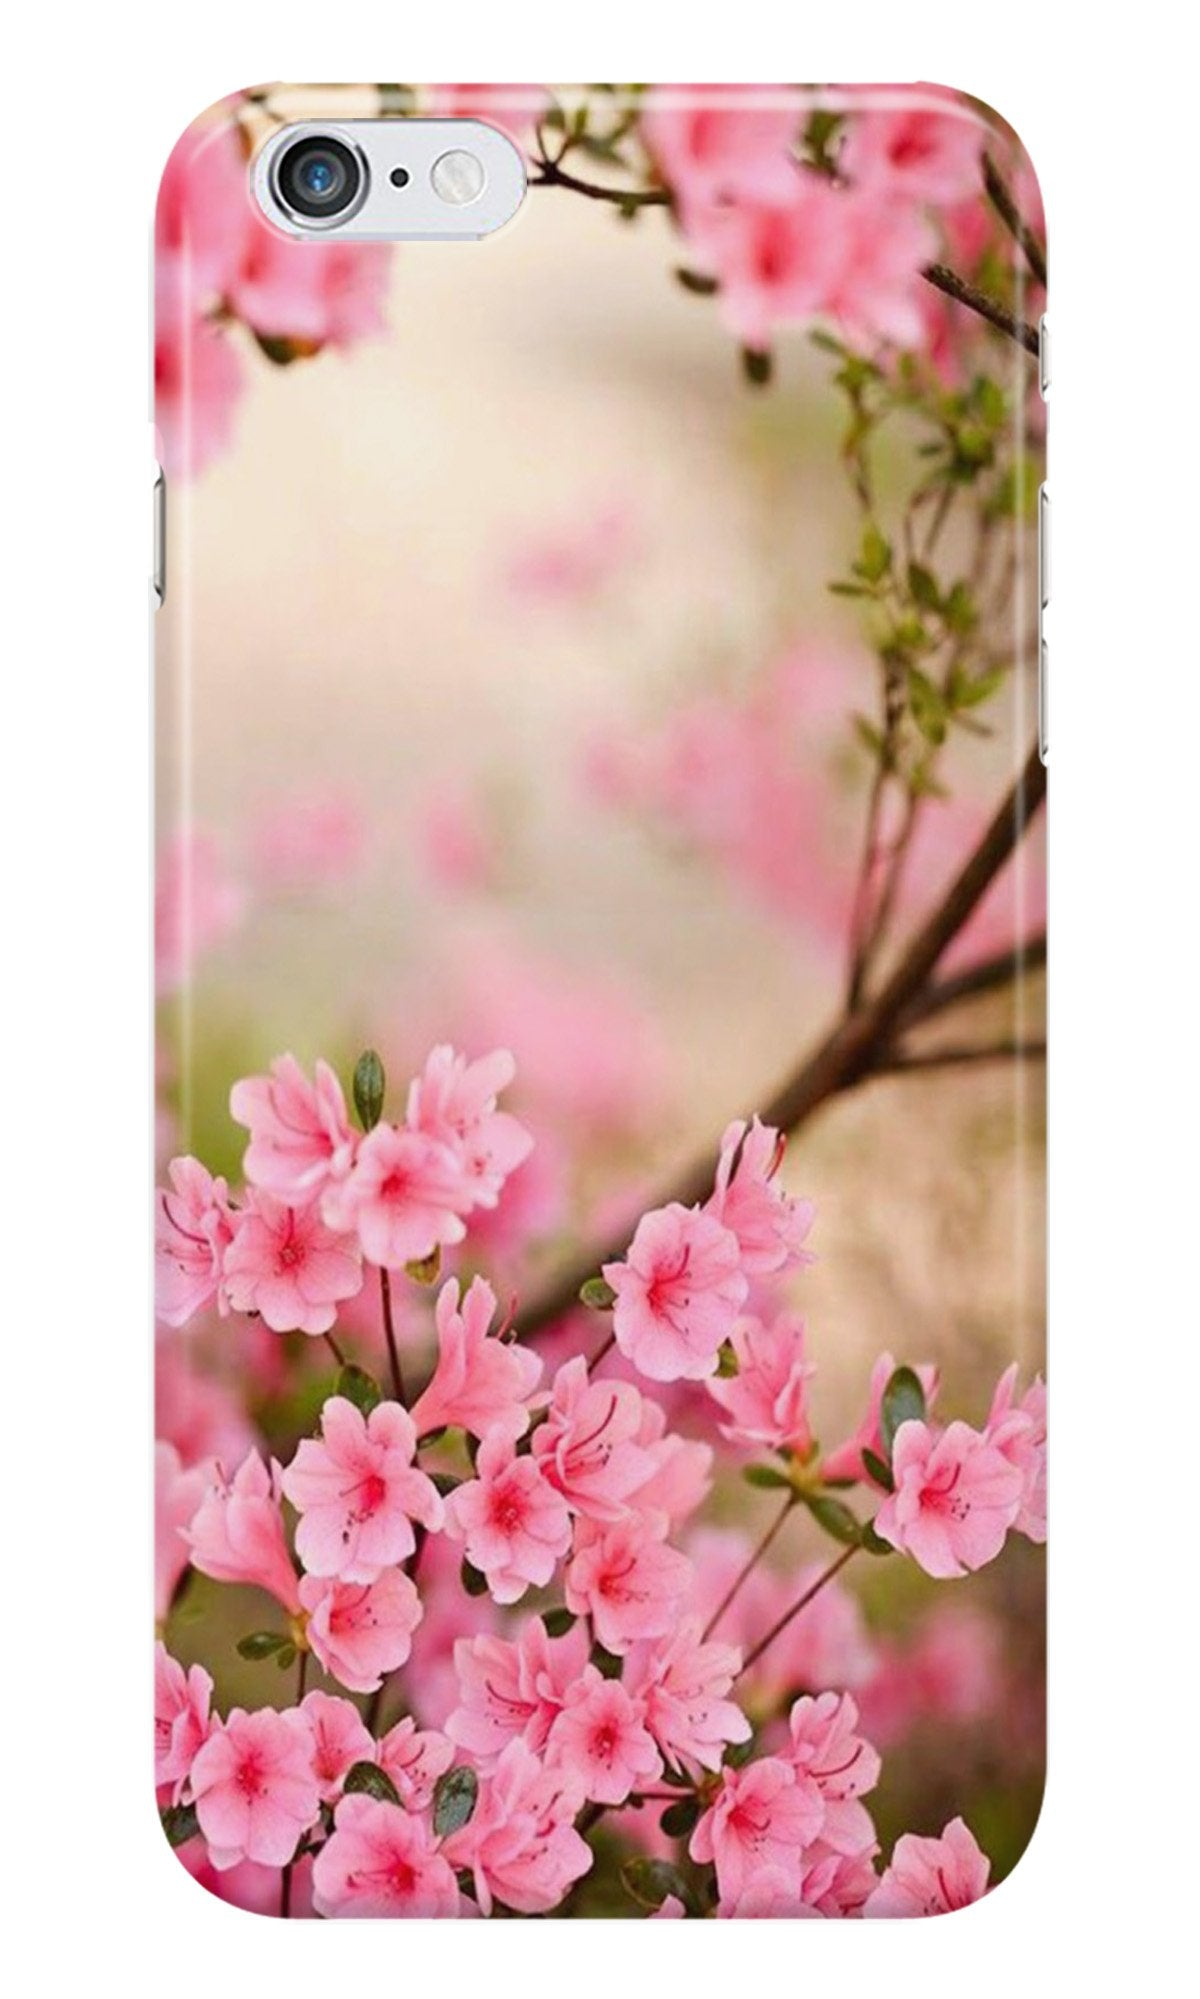 Pink flowers Case for iPhone 6/ 6s